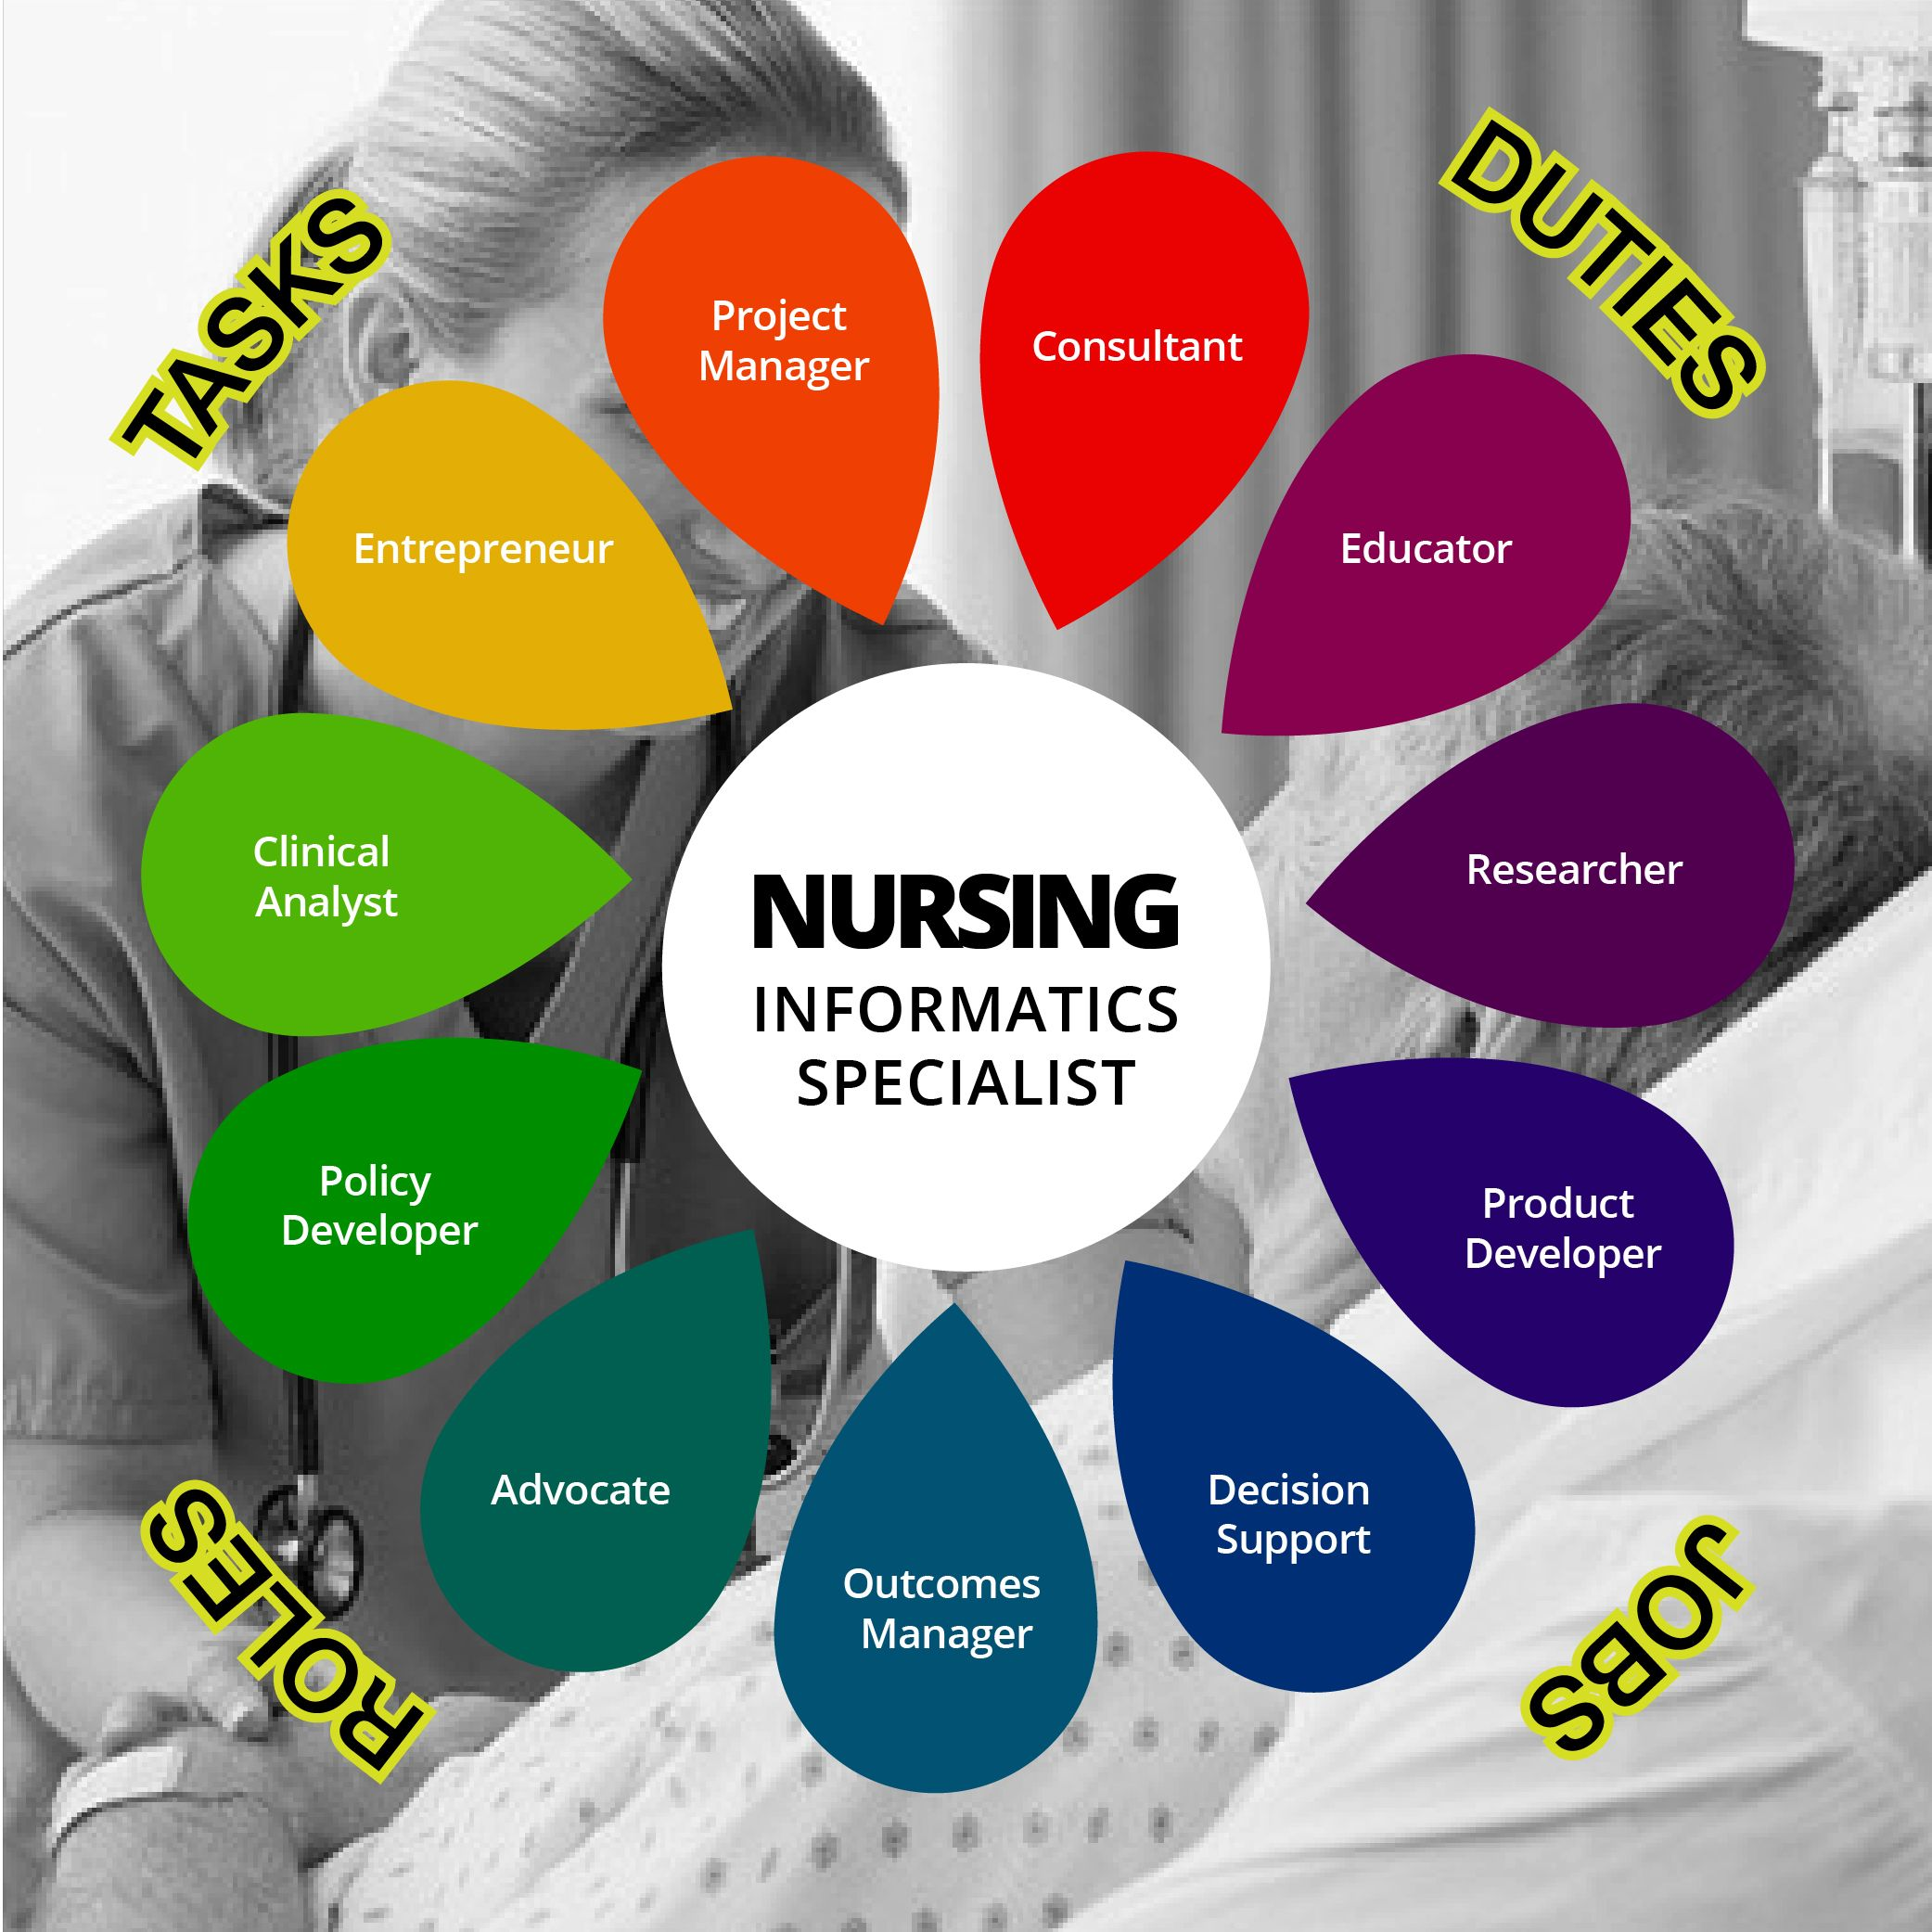 nursing informatics specialist infographic is one of the best infographics created in the health